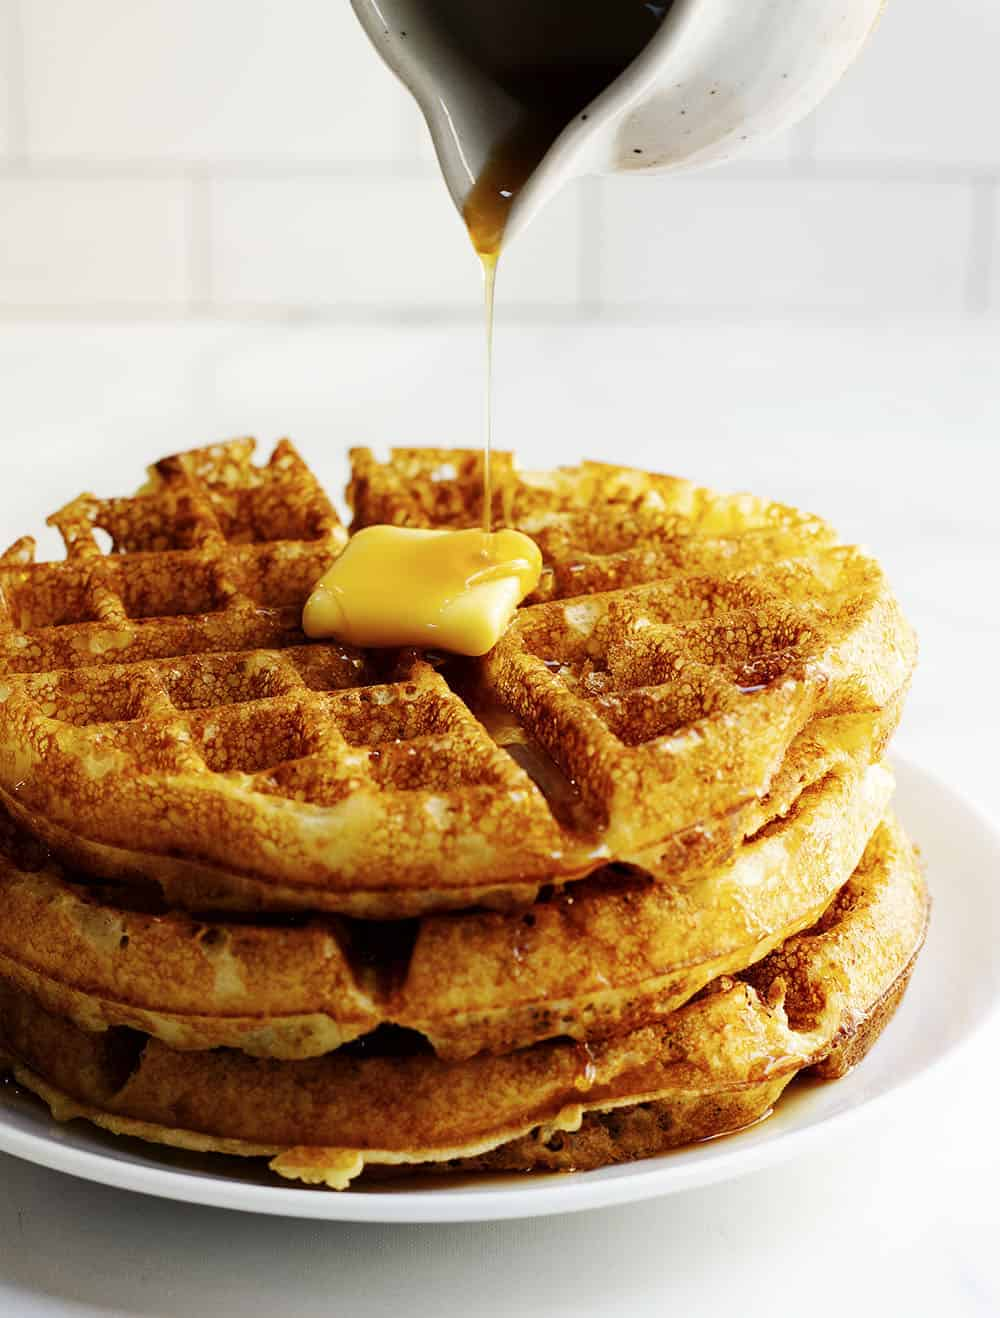 pouring syrup over belgian waffles